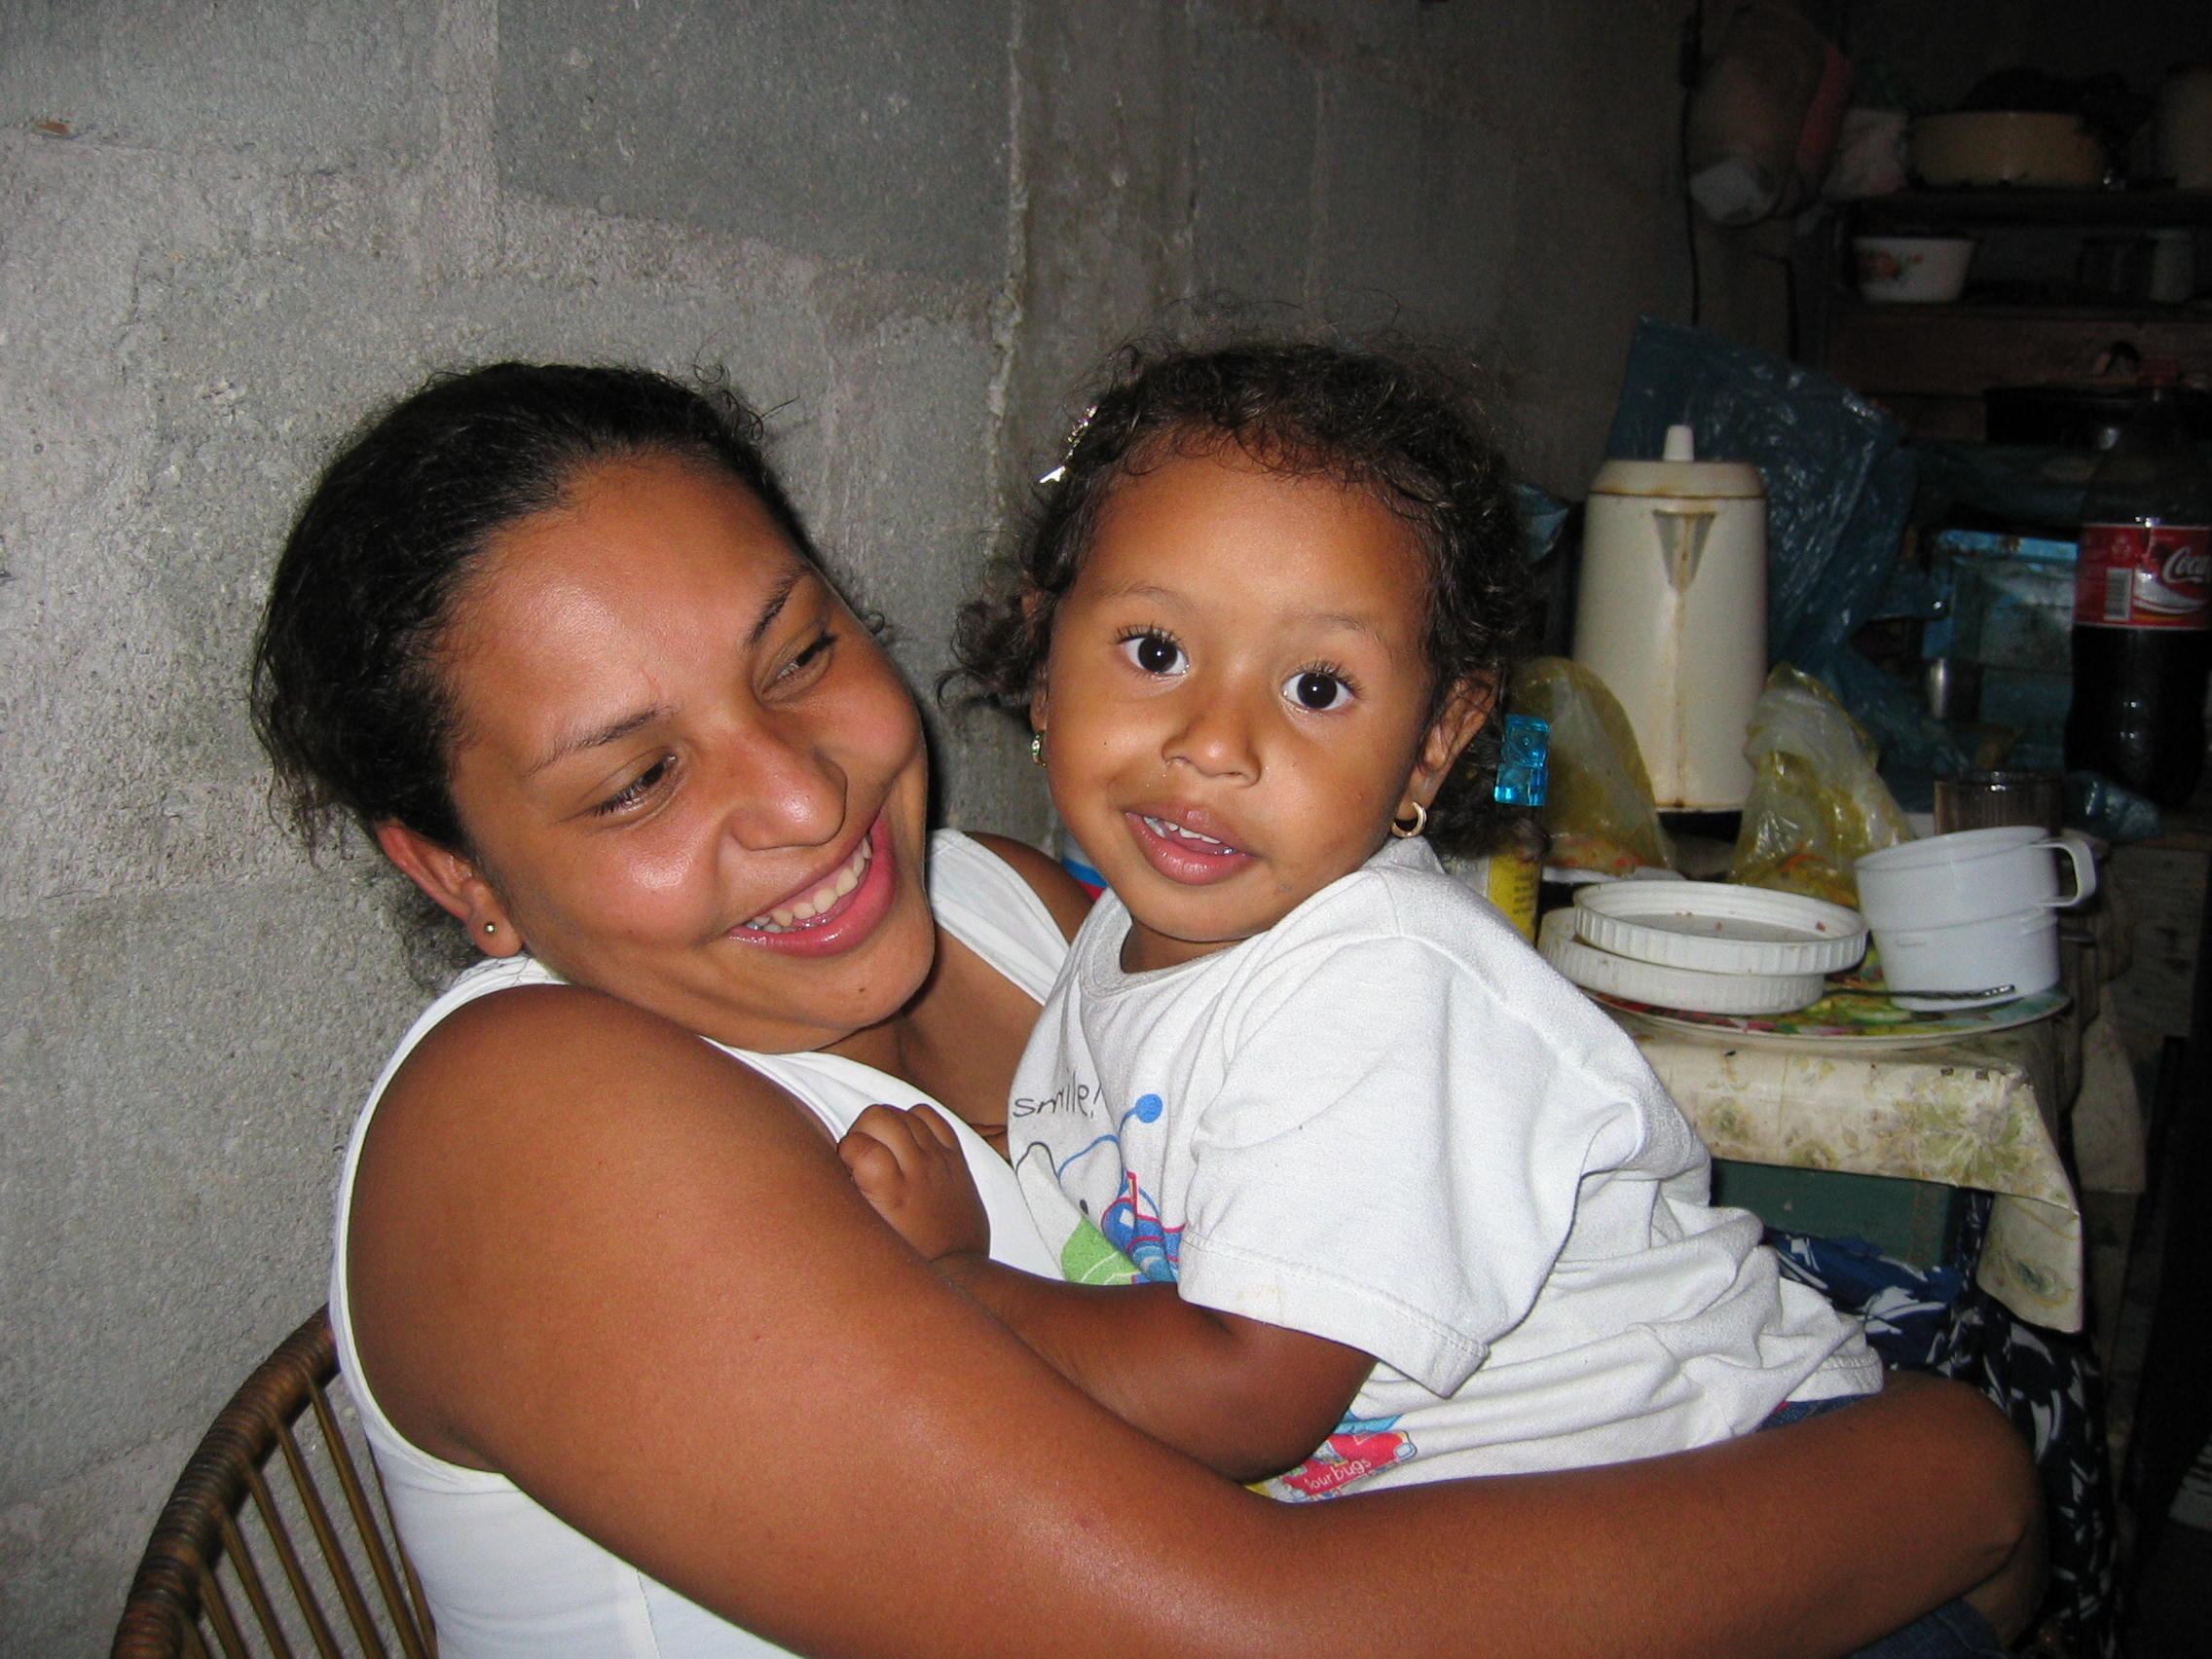 Jasmín and her mother María Isabel in Tegucigalpa in 2003.